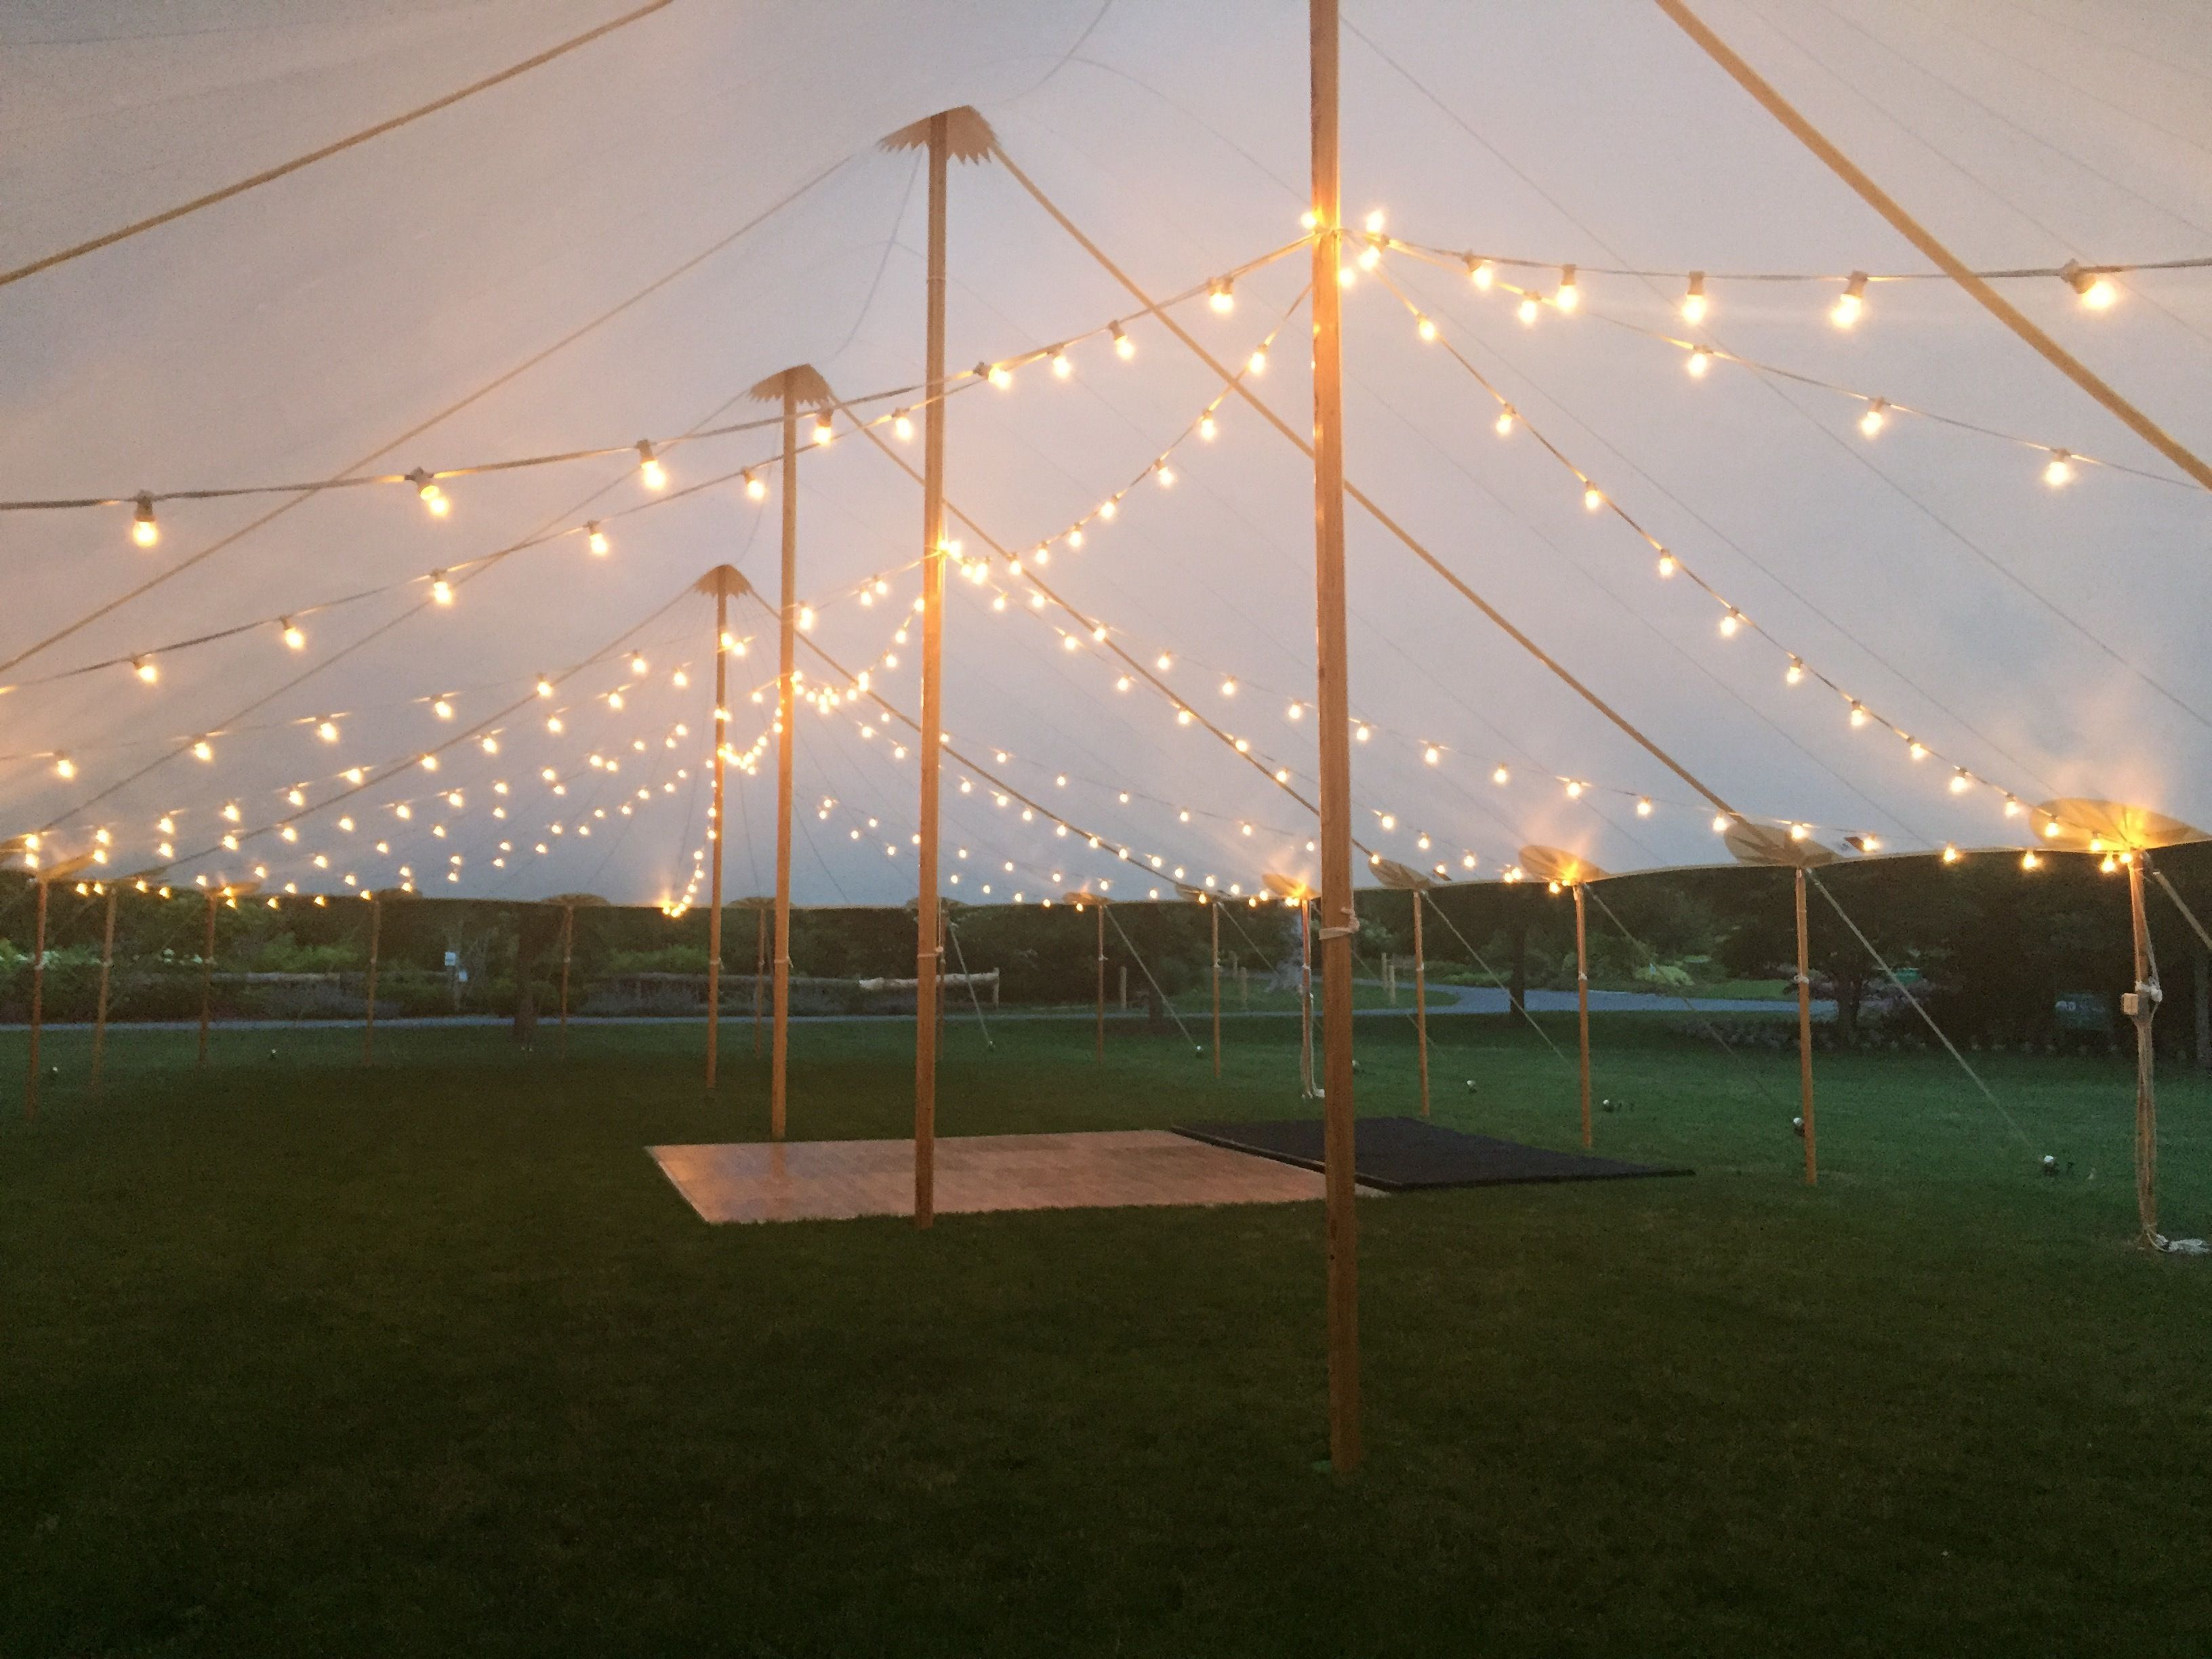 Italian bistro cafe string light rental for wedding reception in - Beautiful Sail Cloth Tent From A Tent For Rent Located In The Maple Grove The